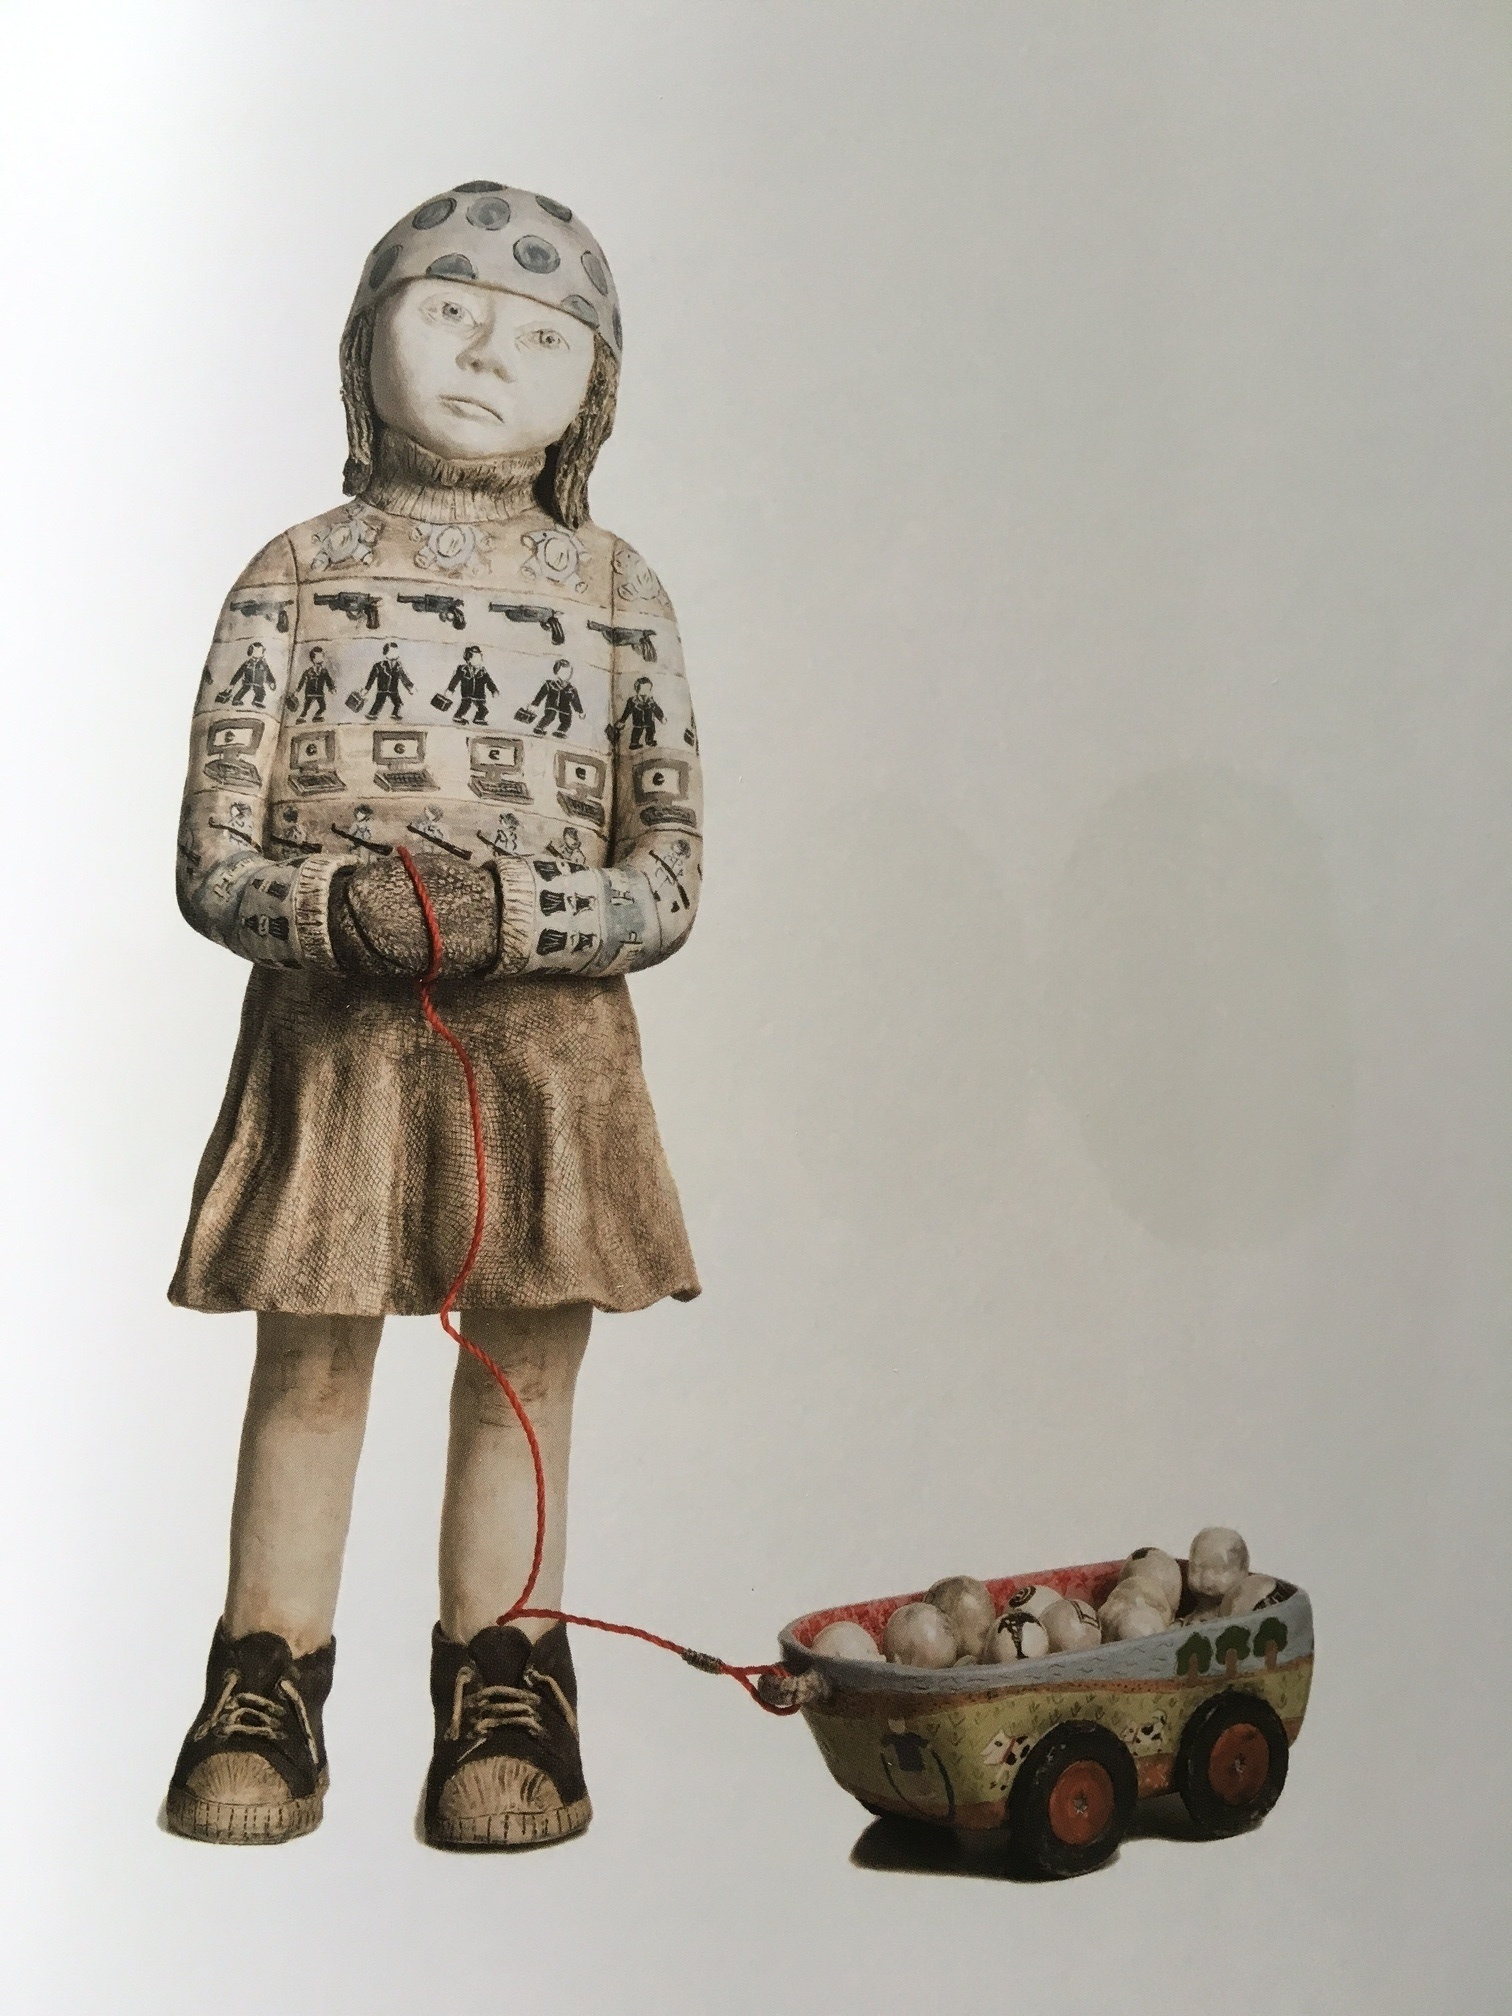 There are no bad children, only children having a bad time (Keramikmuseum Westerwald CC BY-NC-SA)